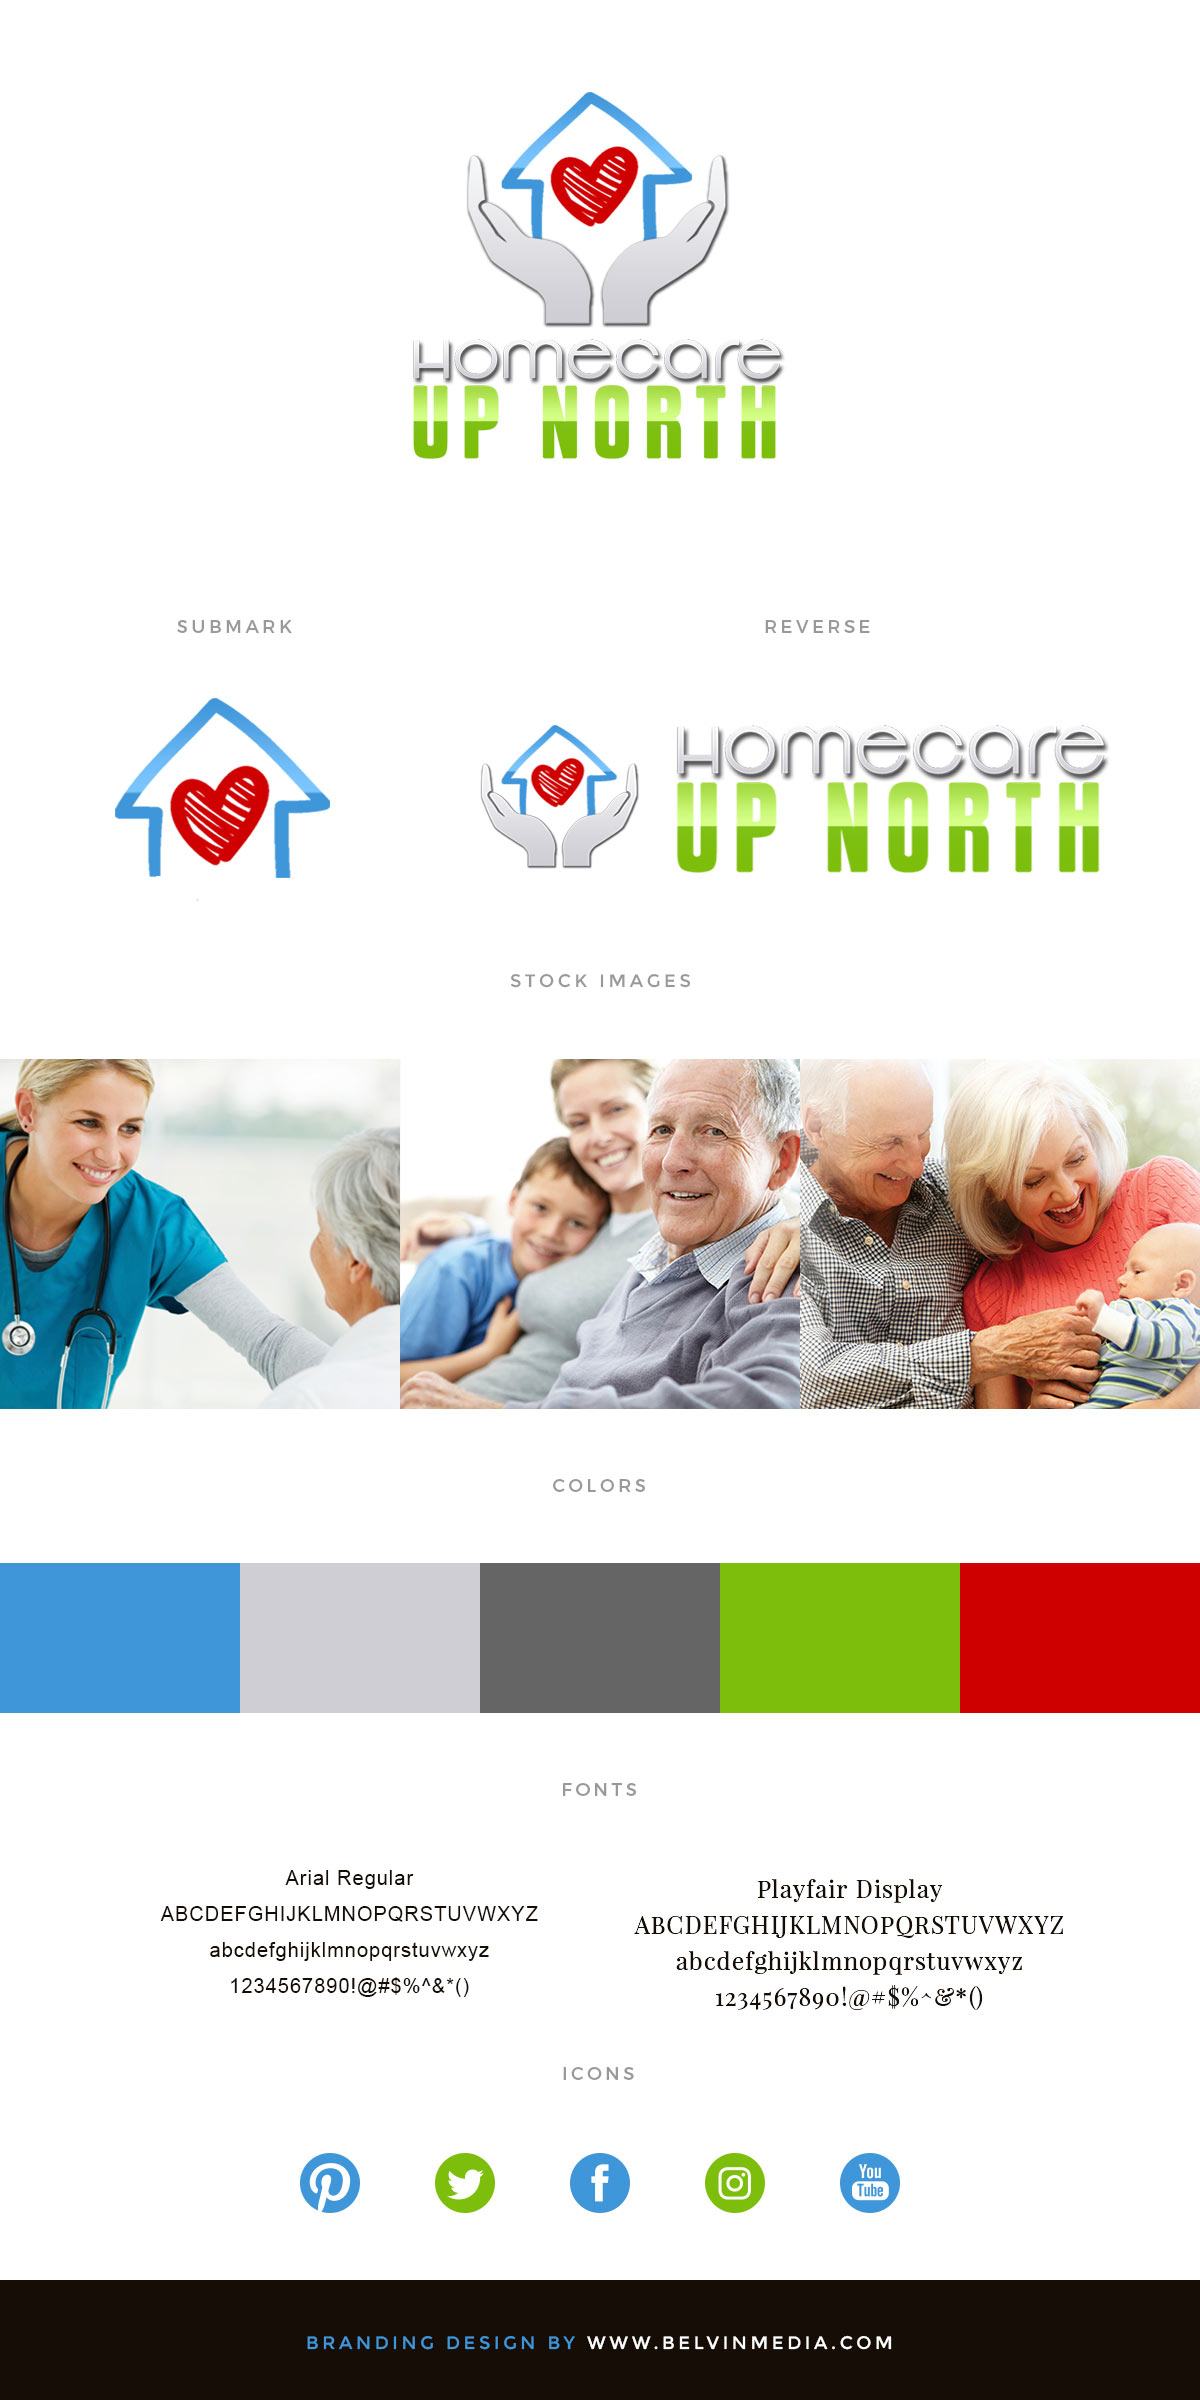 brand-board---style-tile-homecareupnorth